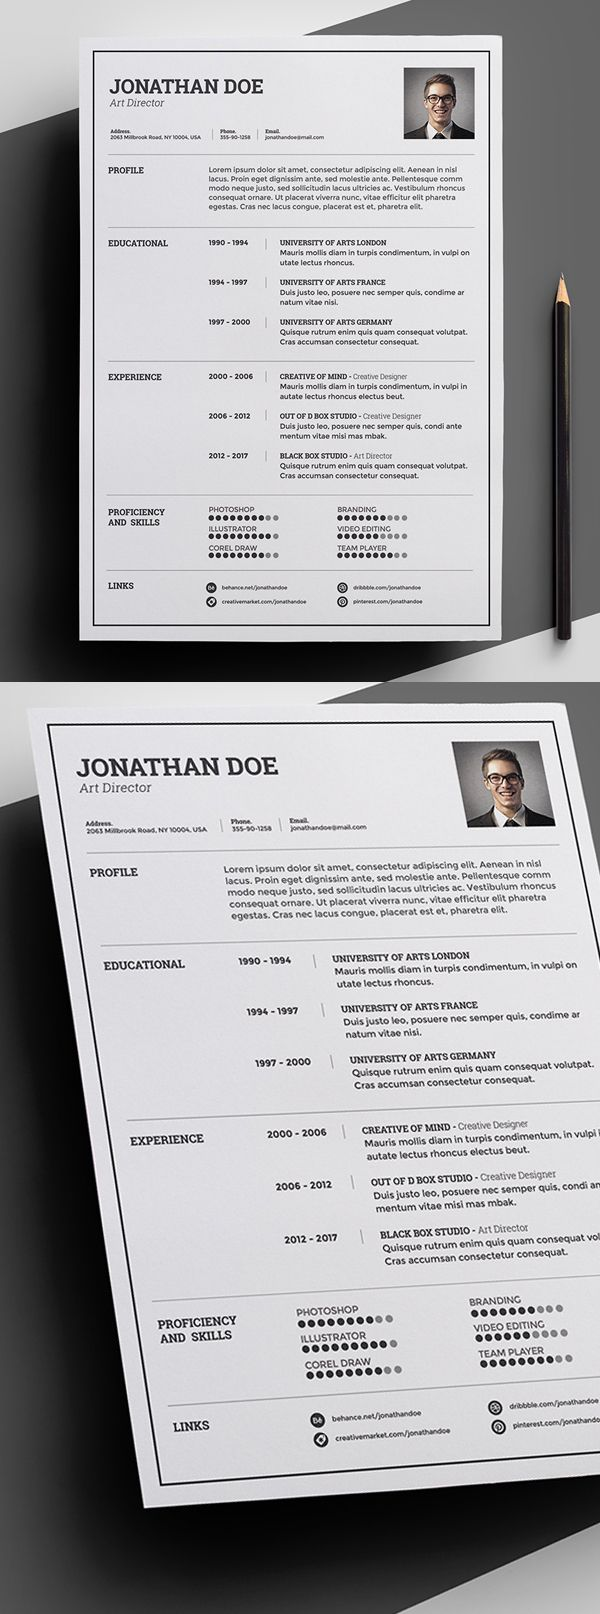 Beautiful creative free resume templates cleanly organized